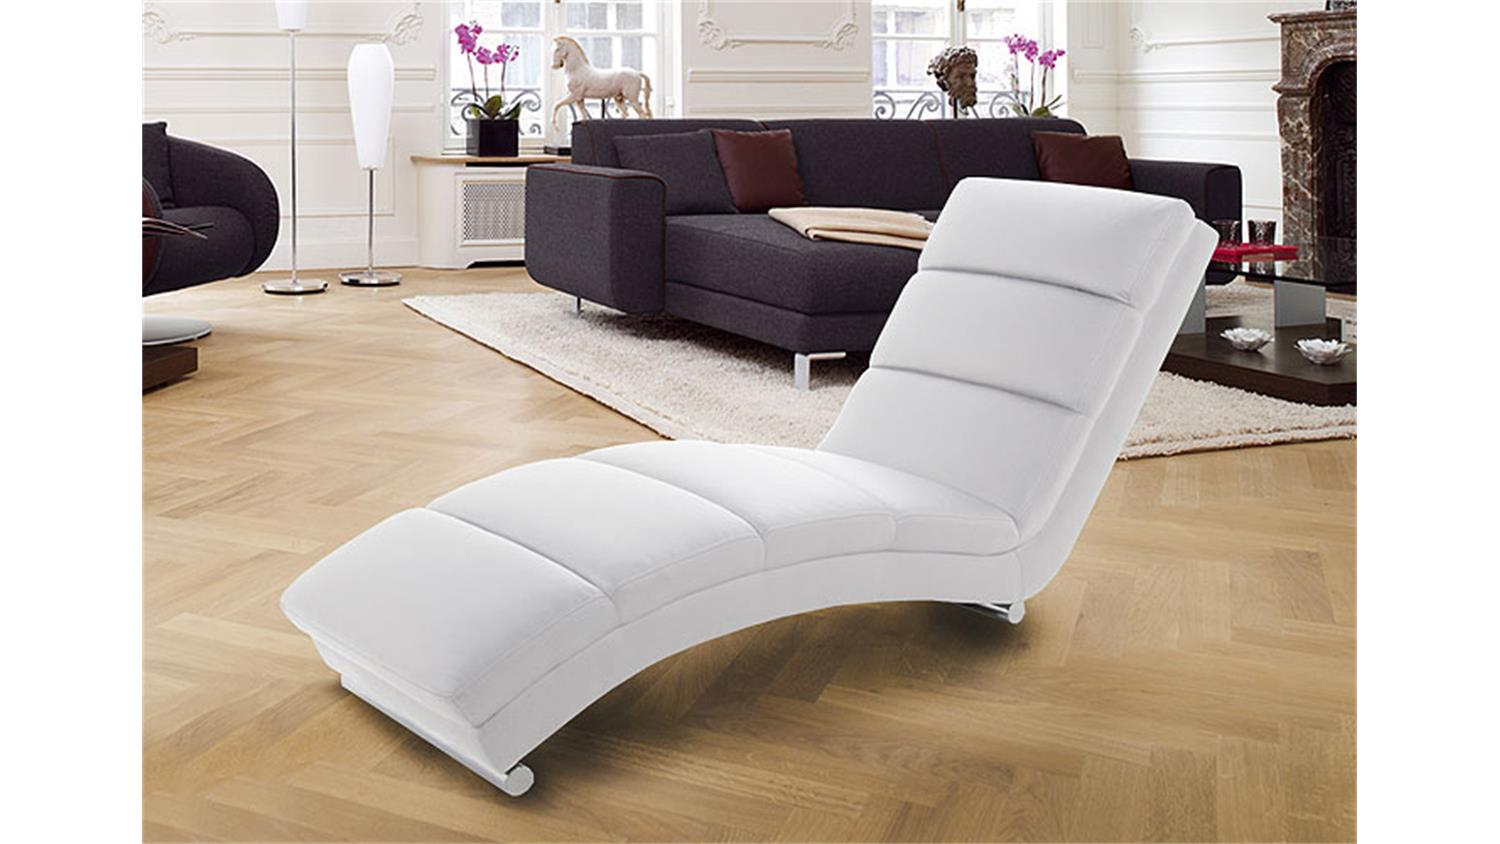 Sessel Liege Love Seat Under Slanted Ceiling Eckbnke Modern With Kleine  Eckbnke.